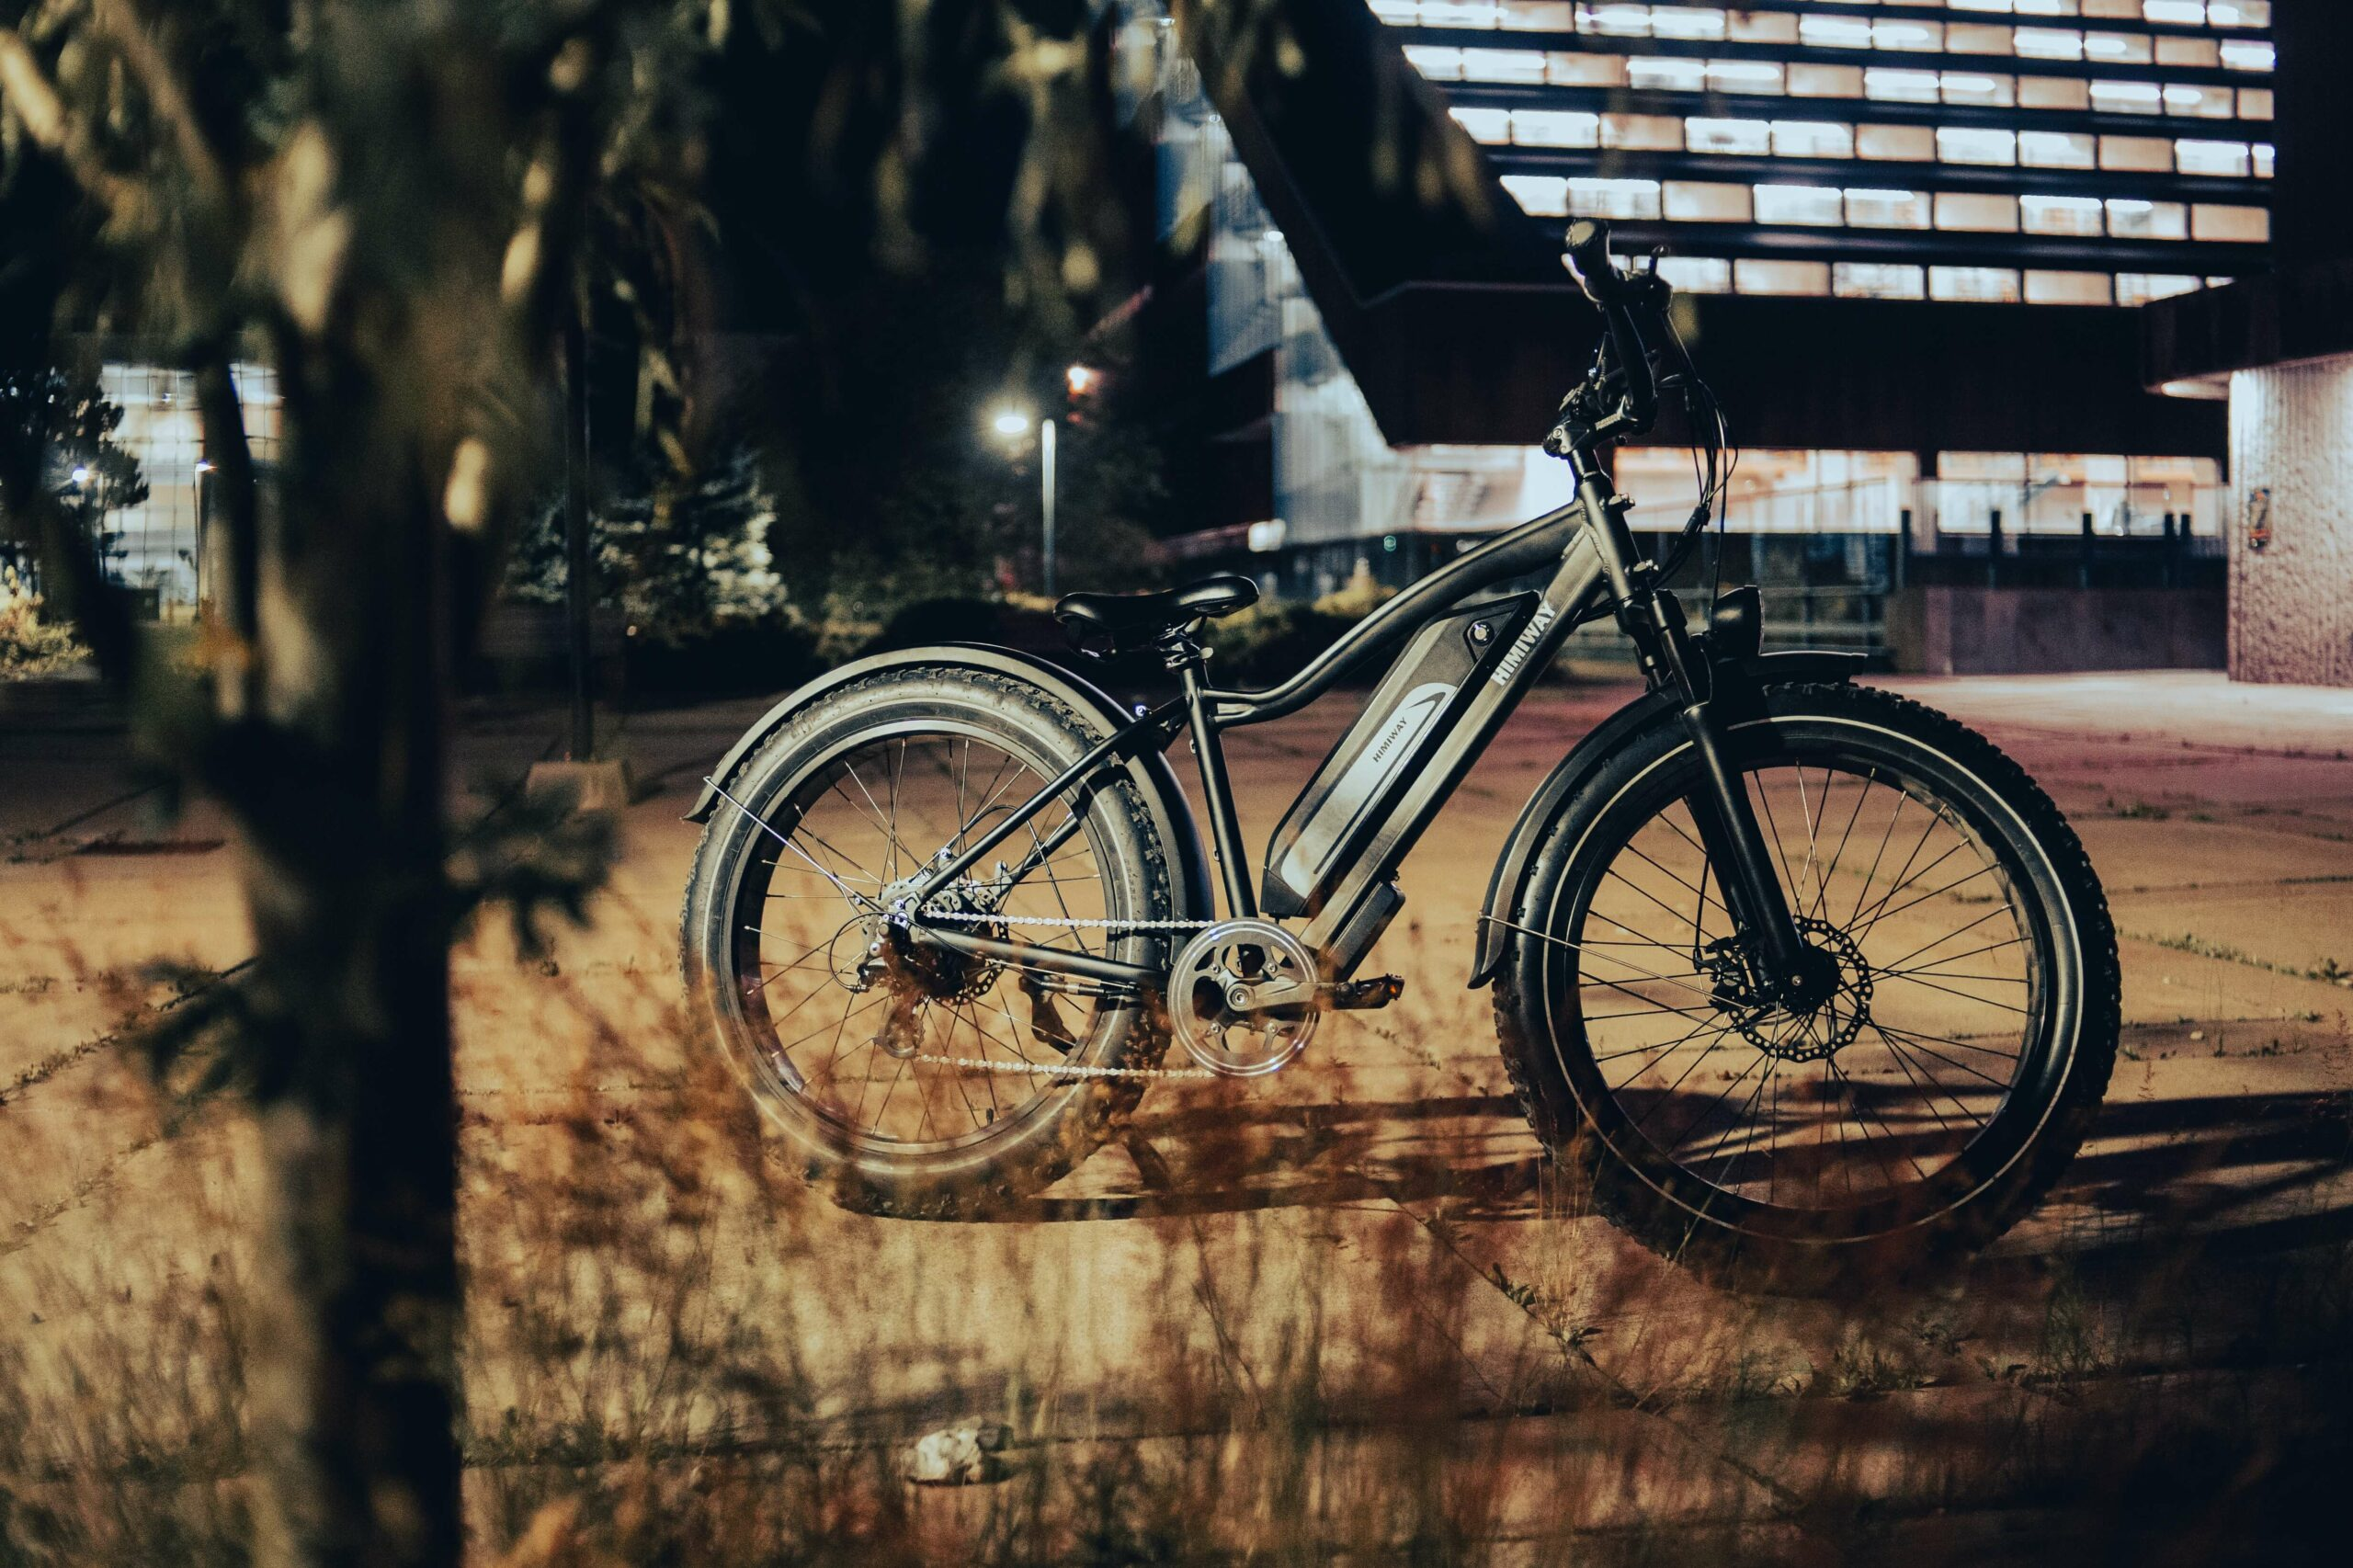 Thanks to an Invoxia Bike Tracker, I recovered my stolen Moustache electric bike twice in less than 24 hours